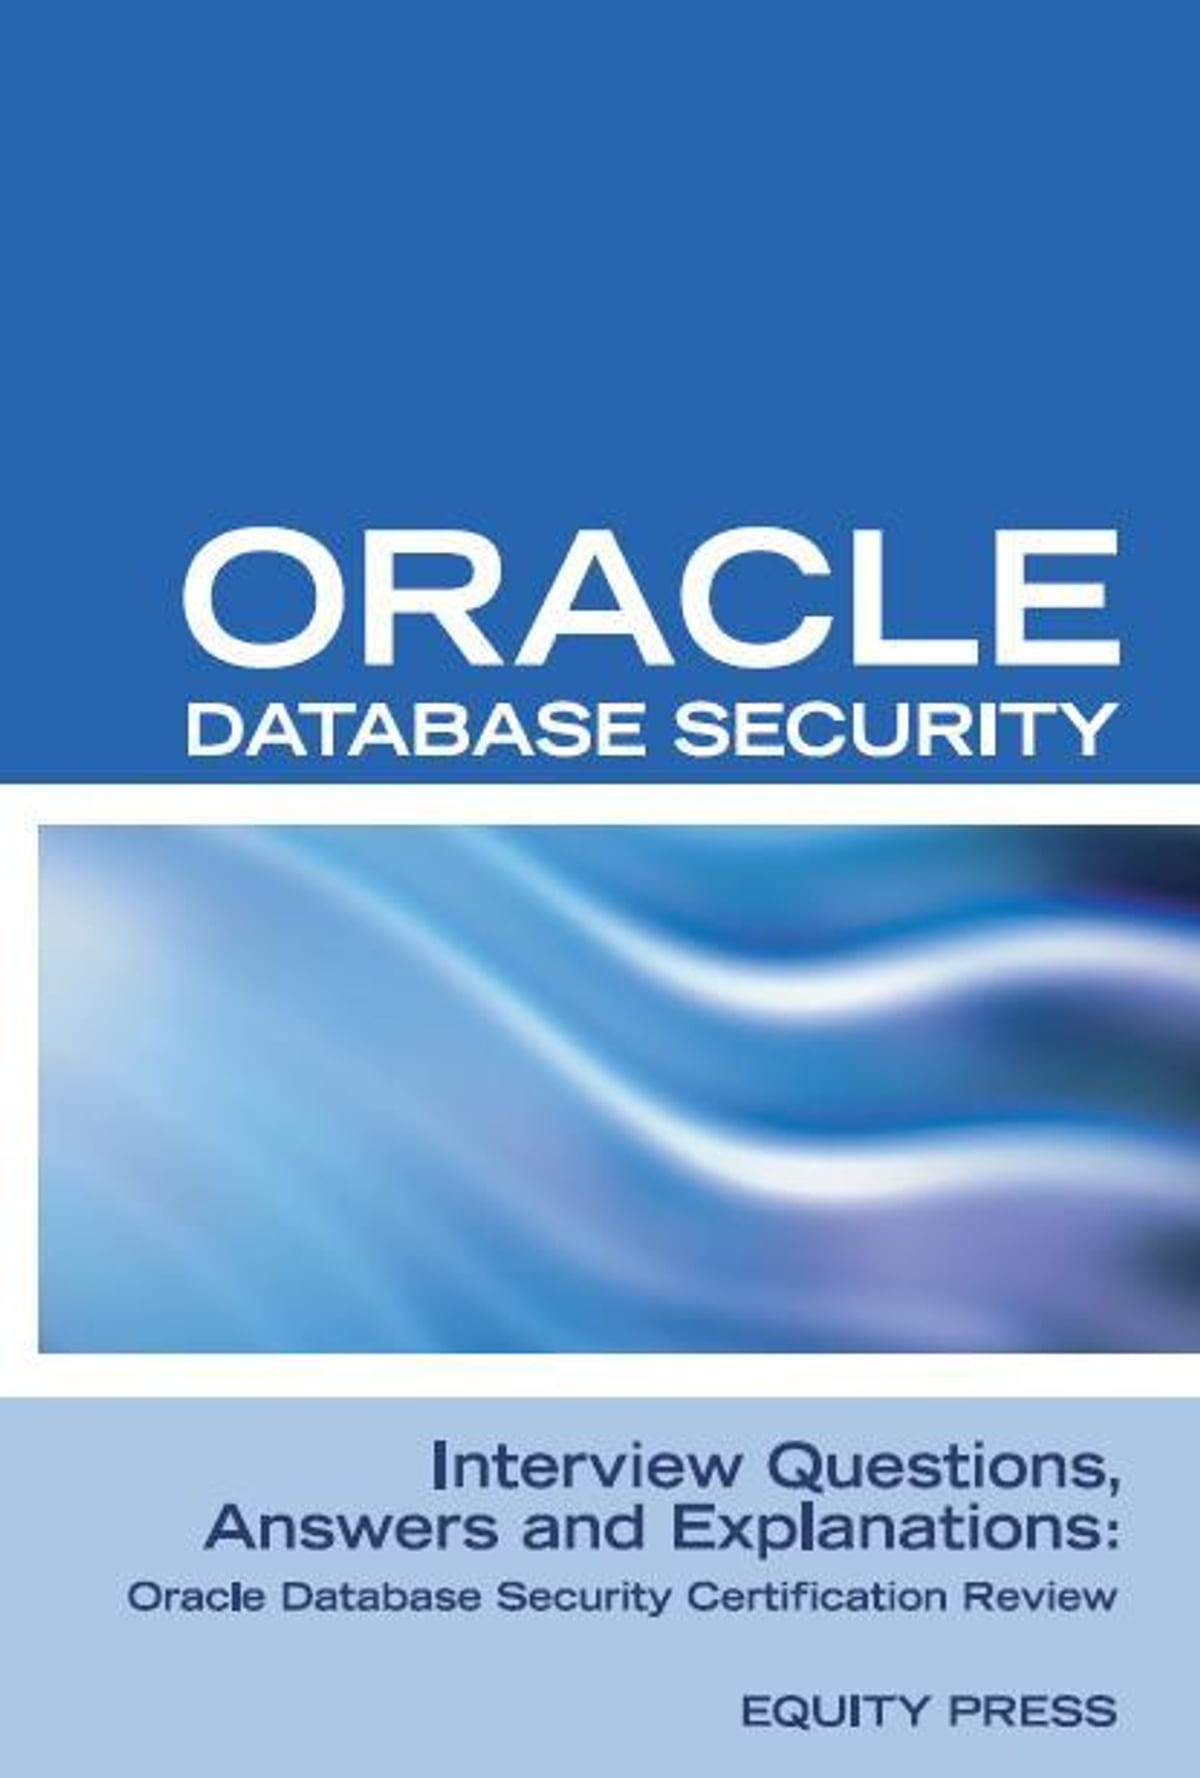 oracle database security interview questions answers and oracle database security interview questions answers and explanations oracle database security certification review ebook by equity press 9781603320085